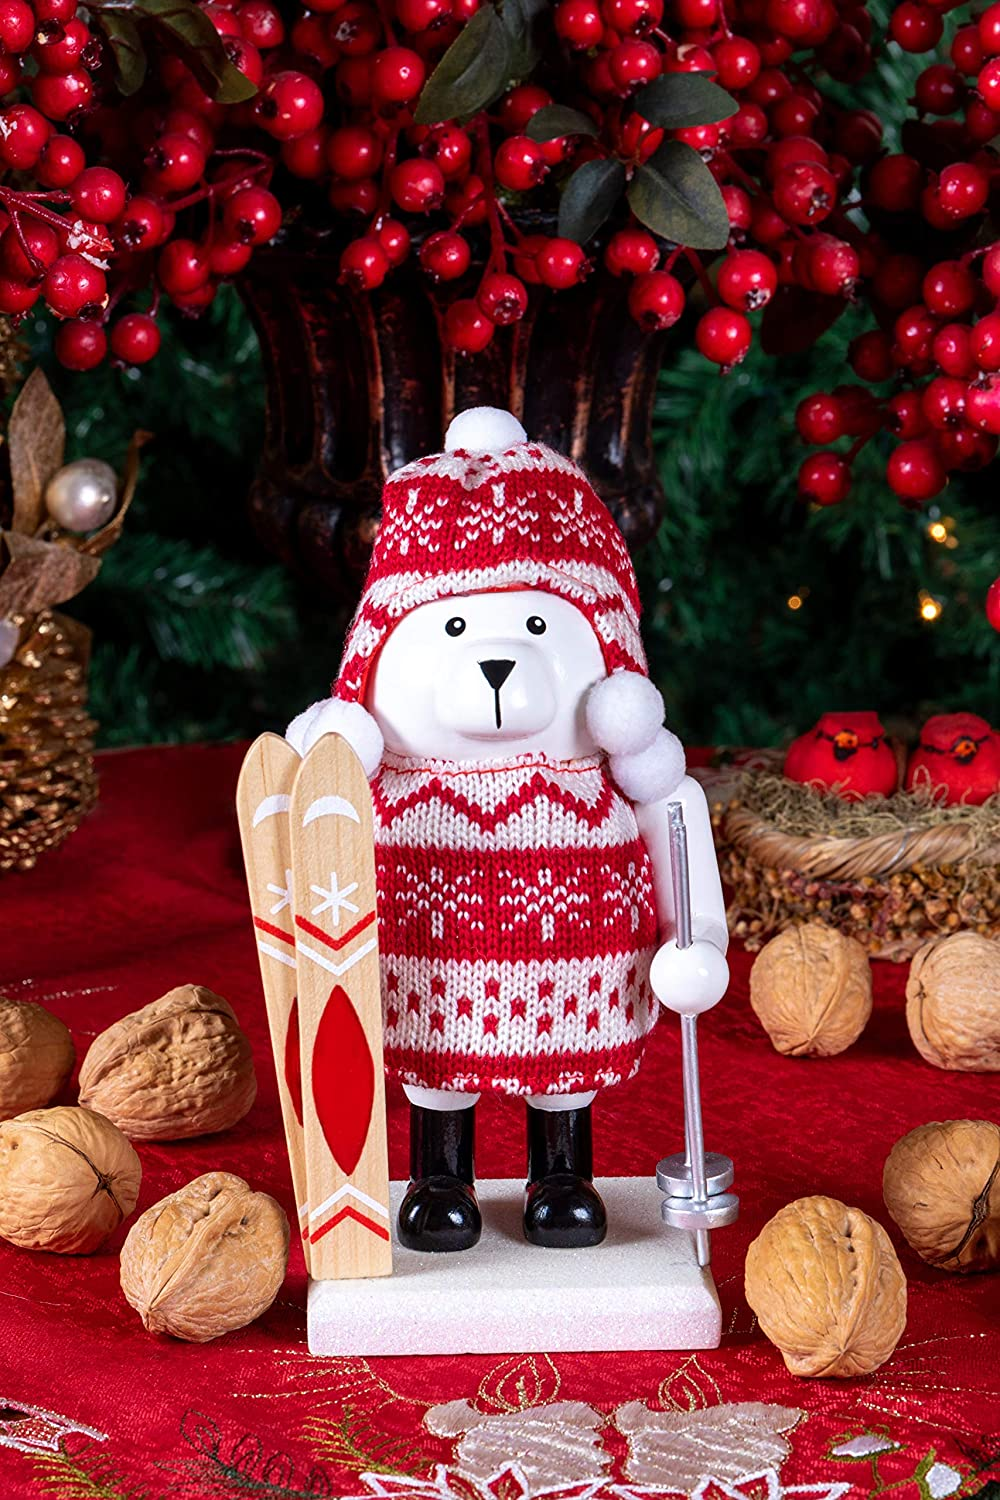 Clever Creations Wooden Chubby Polar Bear Skiier Traditional Nutcracker   Festive Red and White Knit Hat and Sweater Outfit   Festive Christmas Decor   Stands 7.5